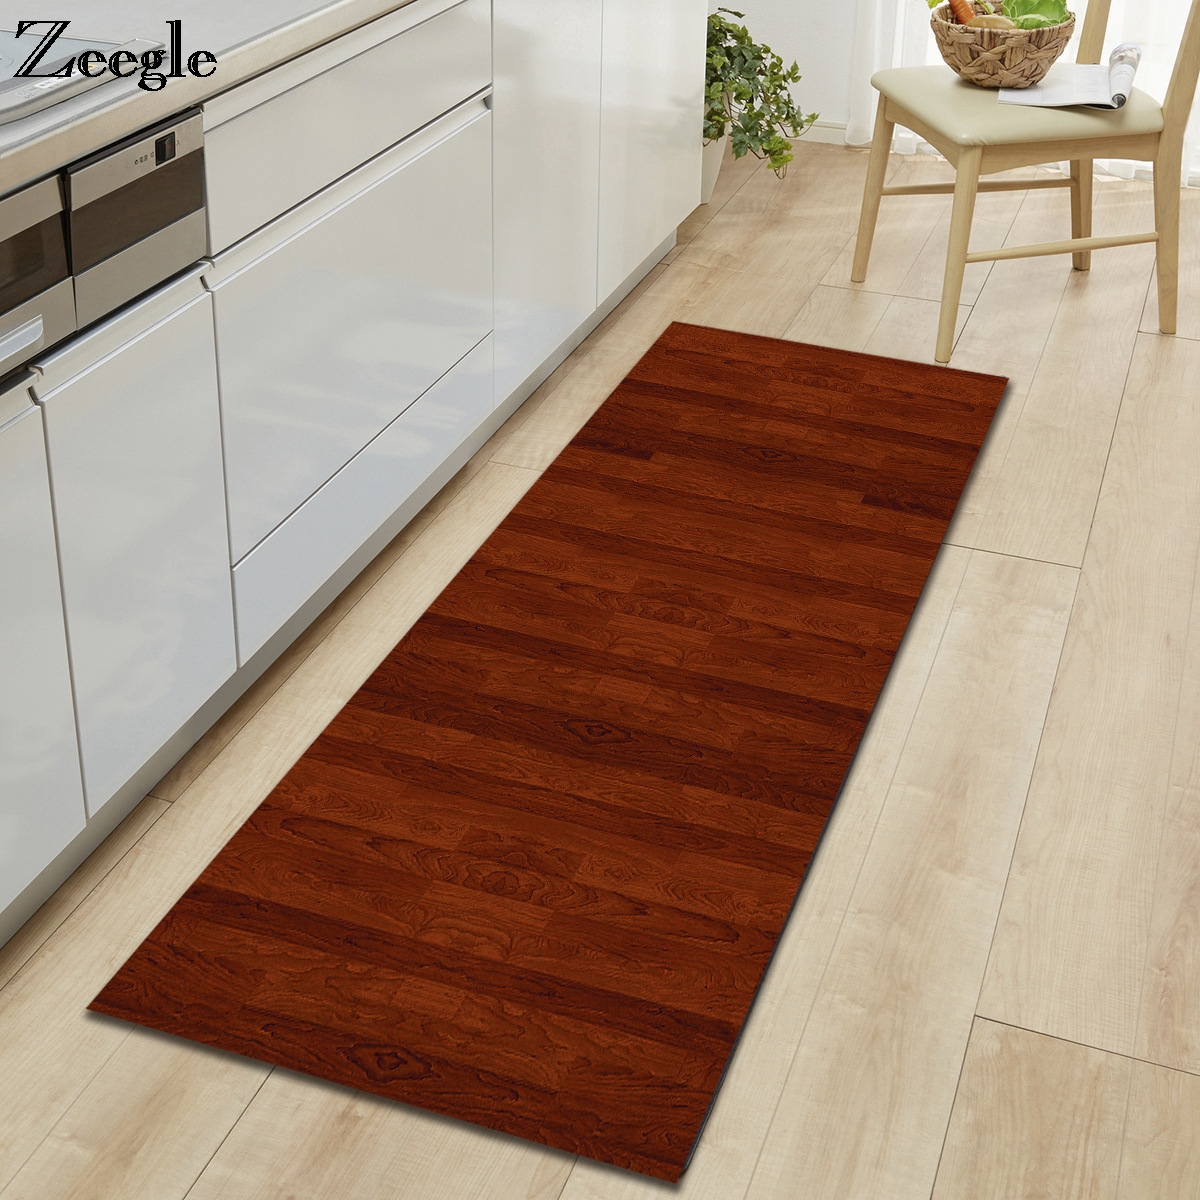 Zeegle Wood Printed Area Rug For Living Room Anti-slip Carpet For Children Bedroom Carpet Bedside Rugs Absorbent Kitchen Mats